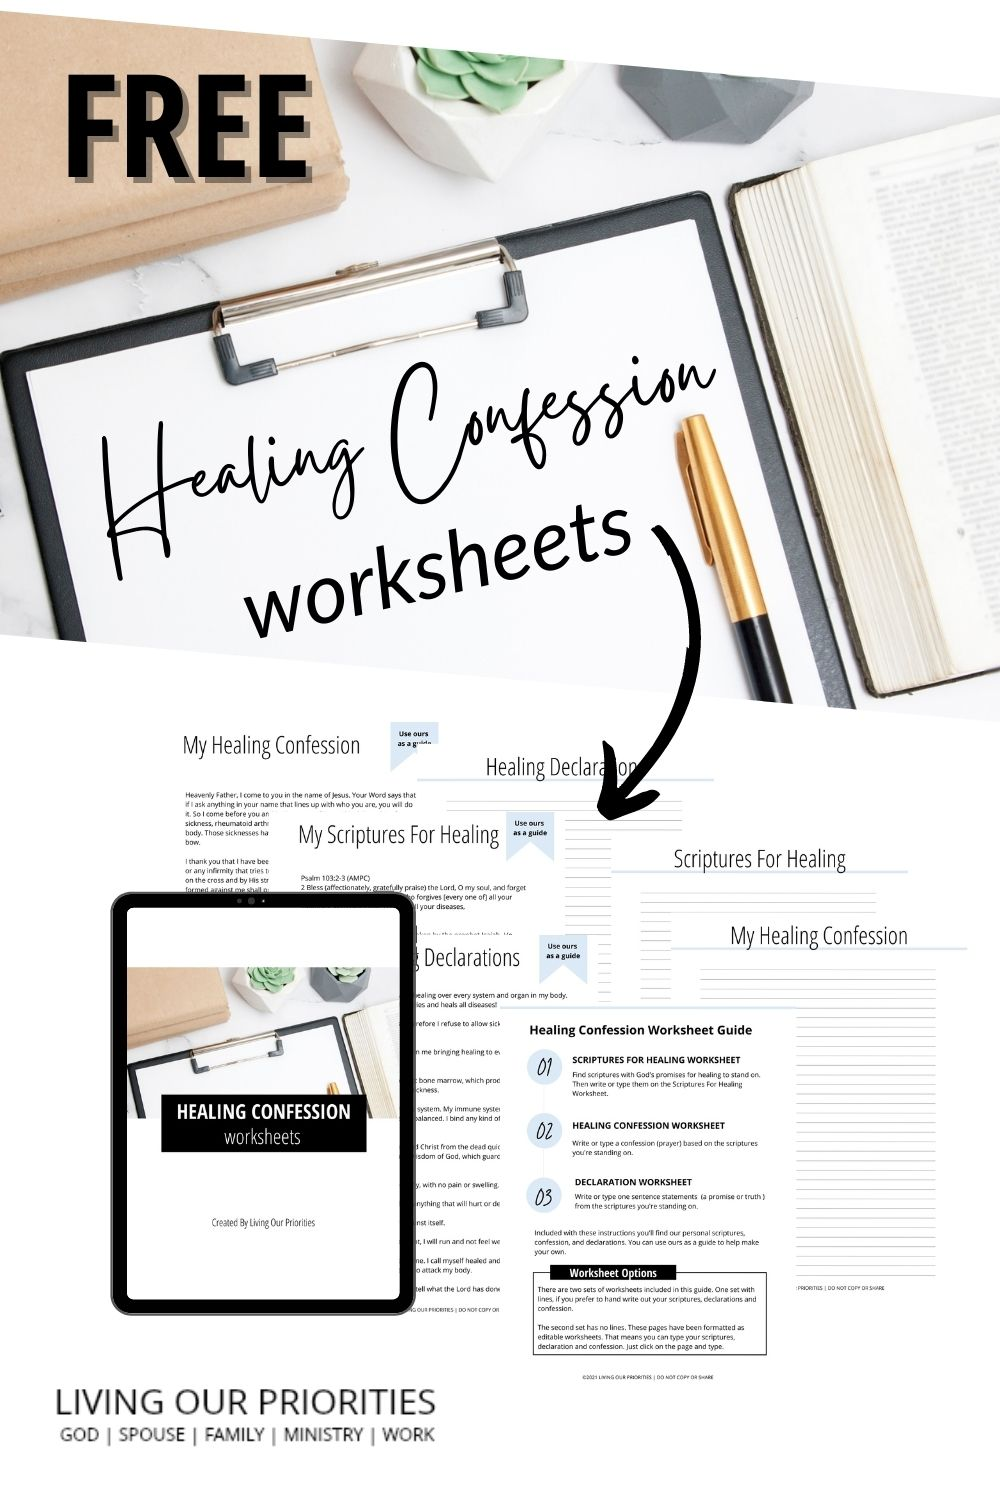 When I learned the healing process began in our spirit, I created a healing confession. Download the FREE Healing Confession Worksheets: healing scriptures, declarations and confession worksheets to declare over your body.